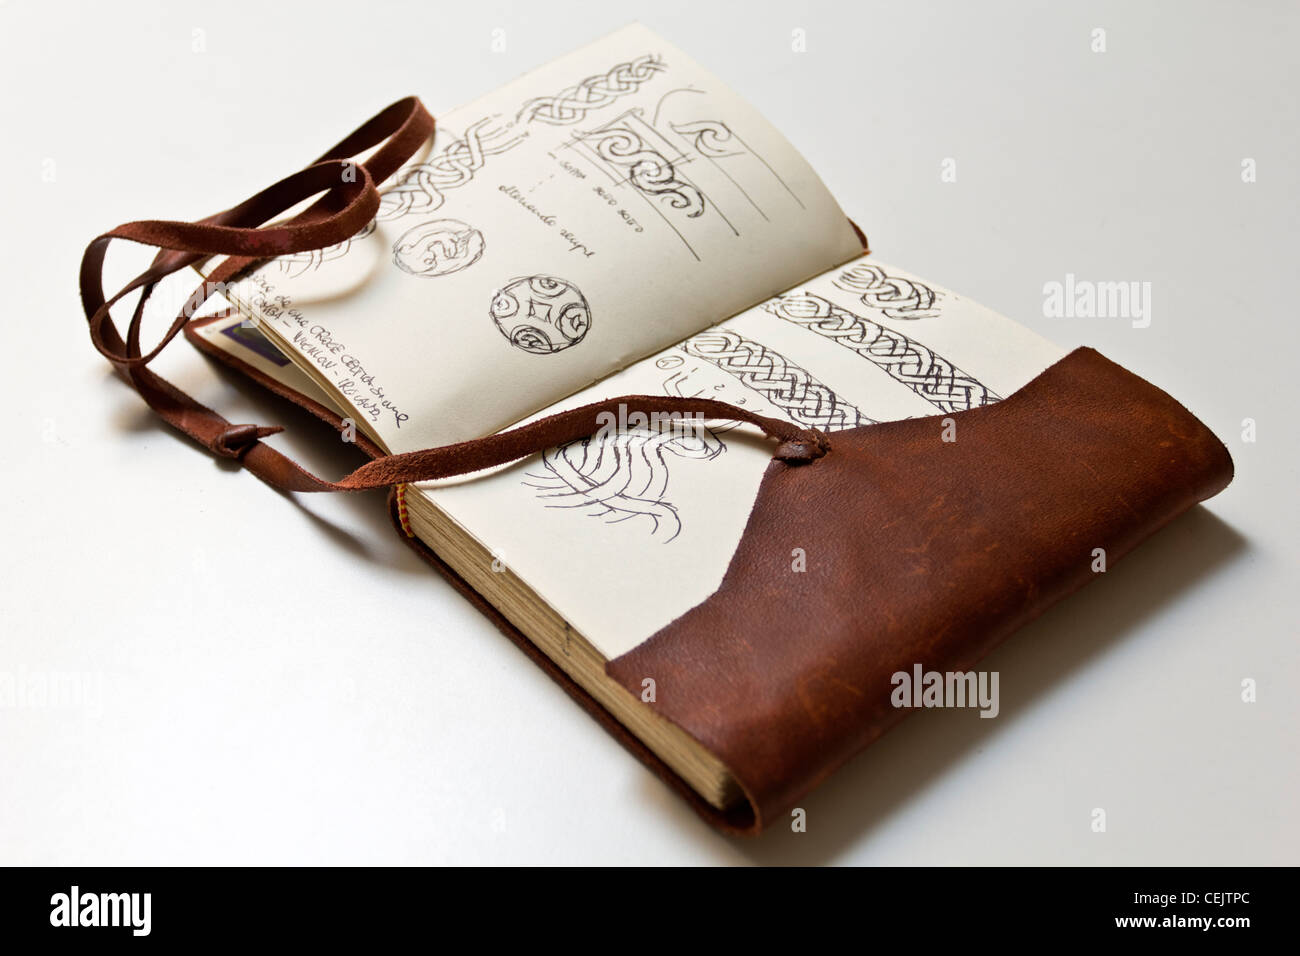 Handwritten and Hand painted Leather old sketch book vintage, personal diary, fully released if necessary - Stock Image